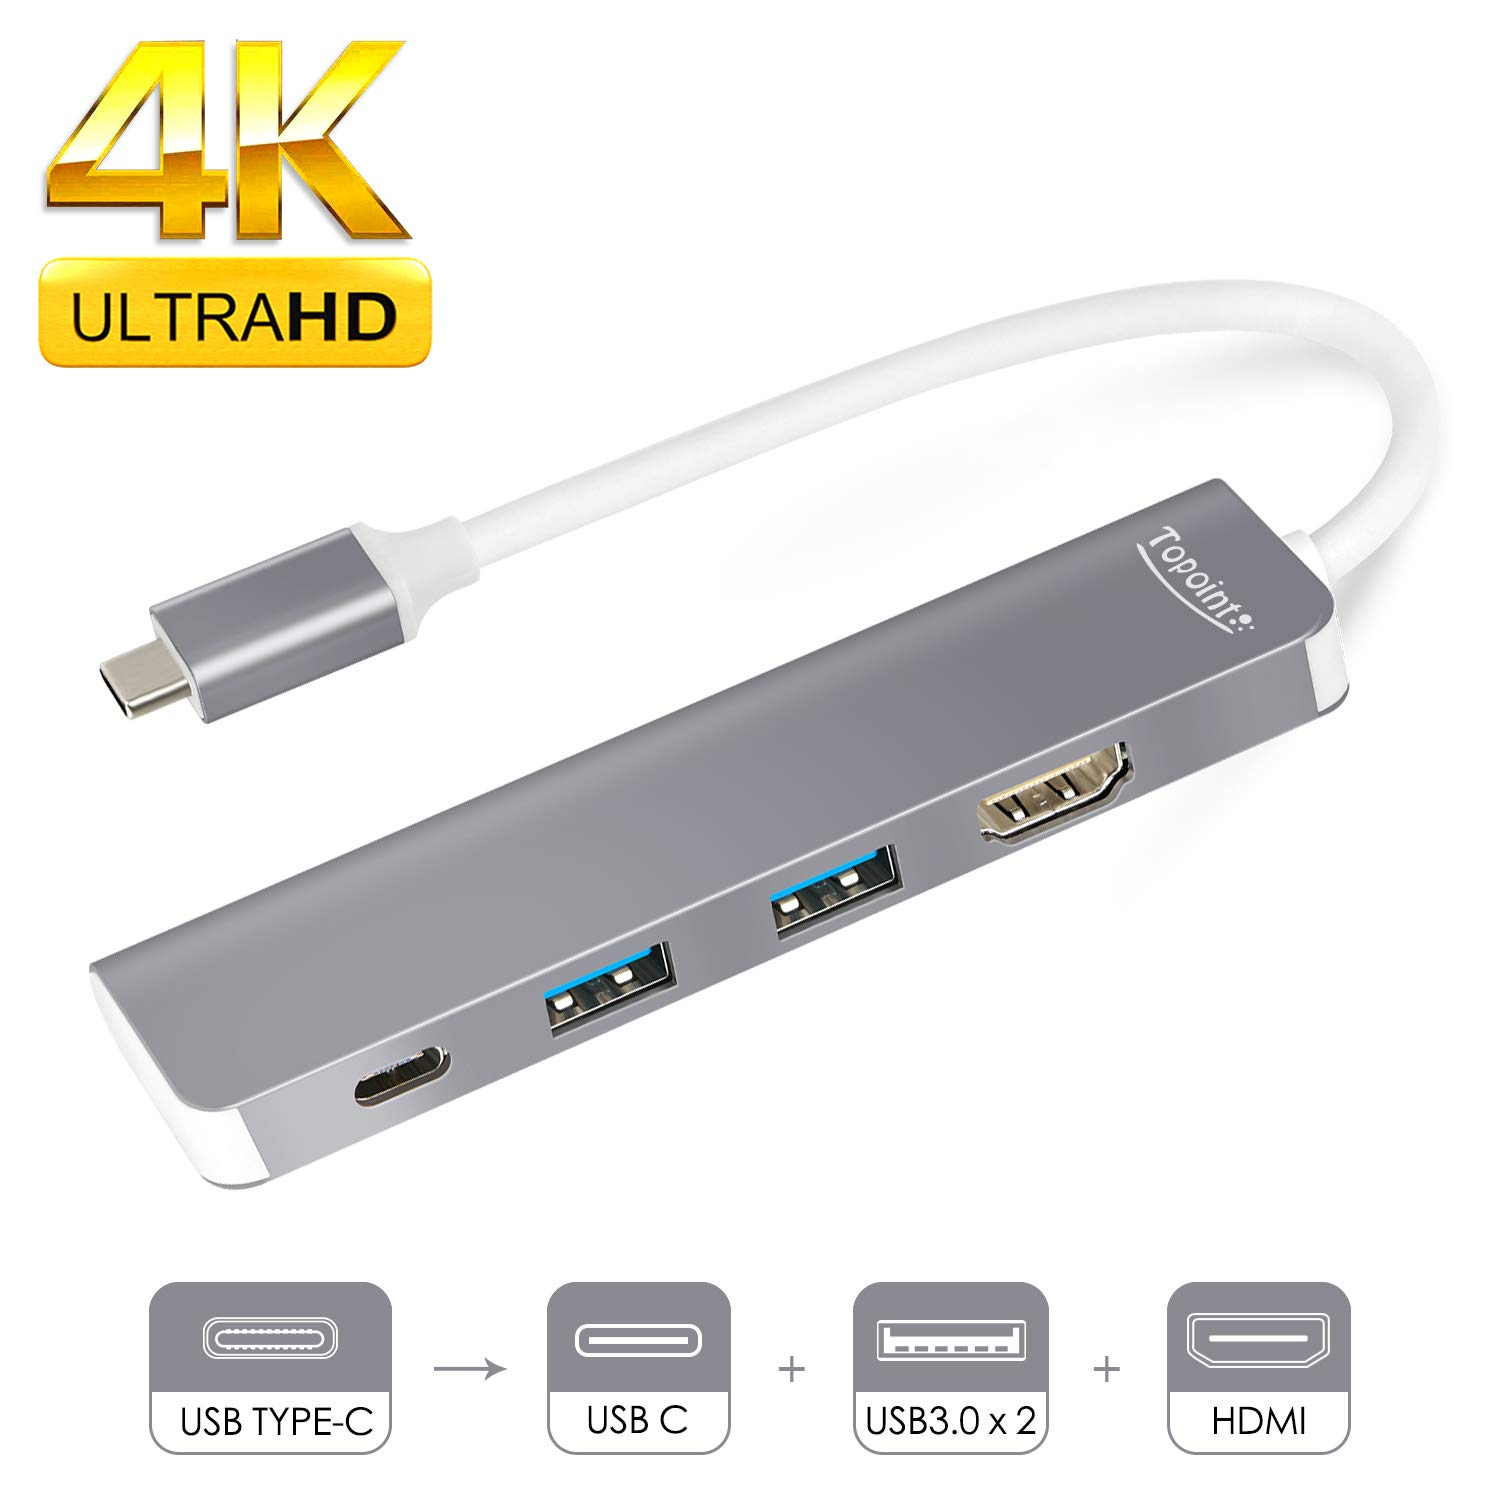 USB C to HDMI Adapter for Samsung DeX Desktop Experience for Galaxy  S10/S10+/S10e/S9/S9+/S8/S8+ Note9/8, Nintendo Switch HDMI Adapter, Support